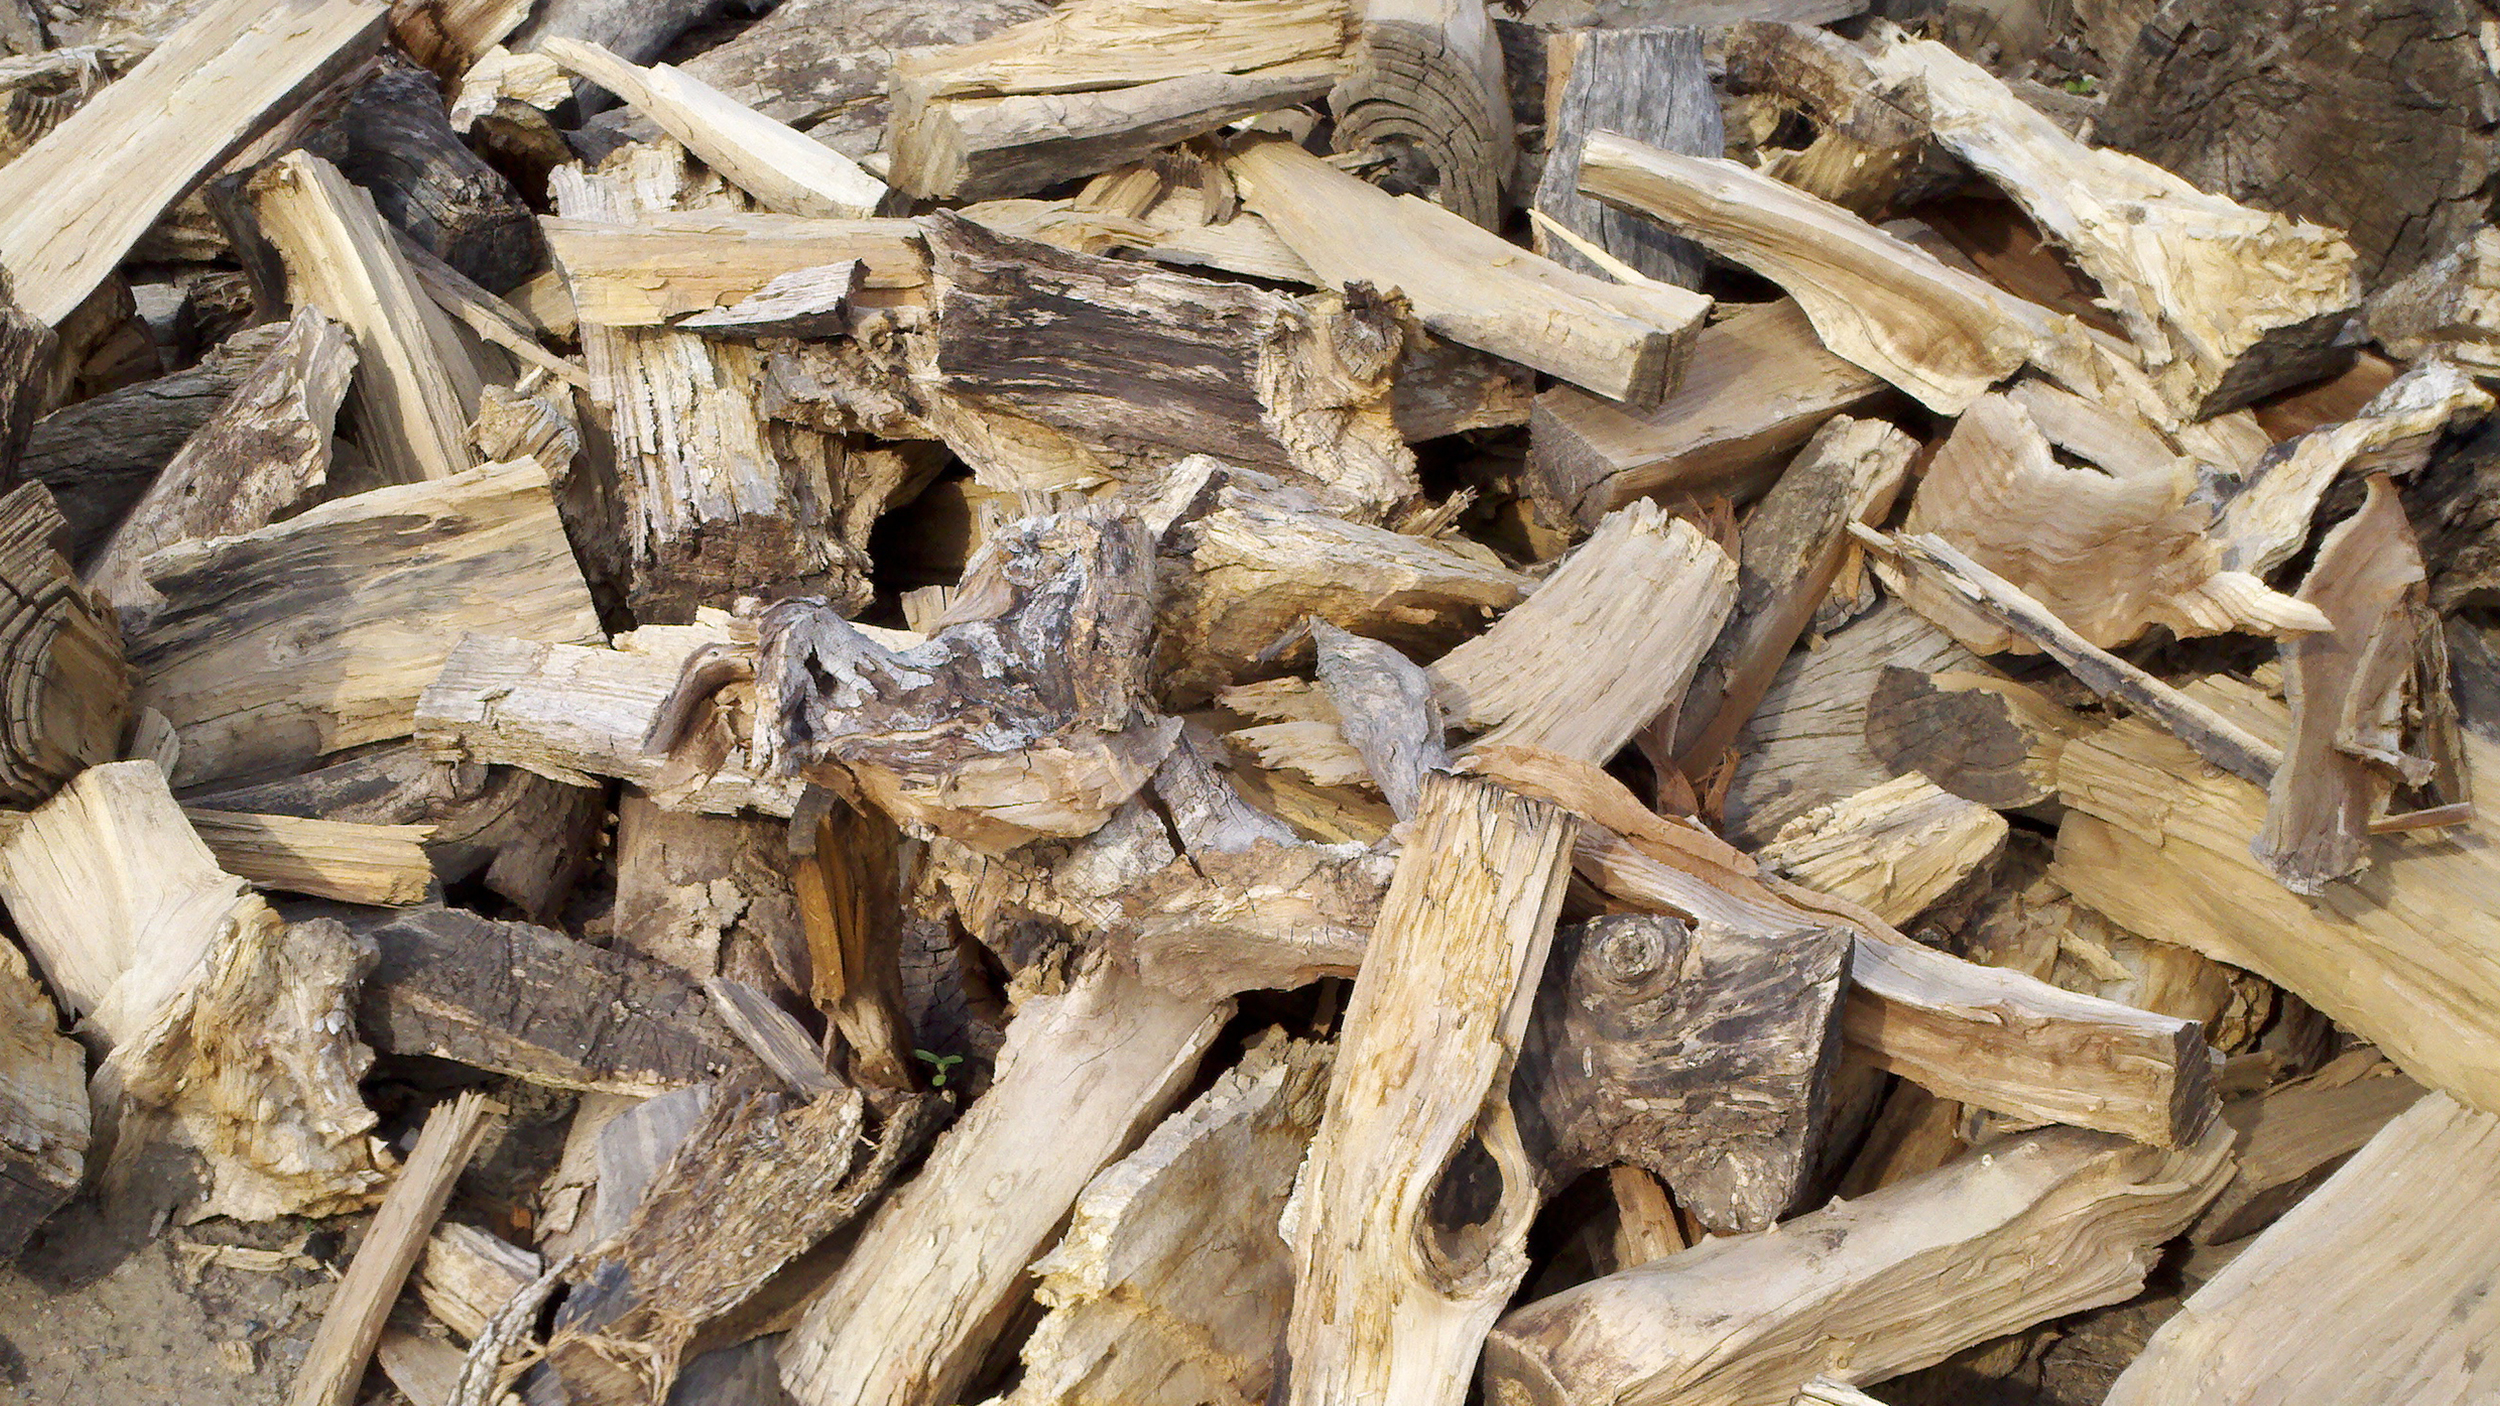 A medium hardwood and excellent cooking fuel praised for its mild, sweet smoke.